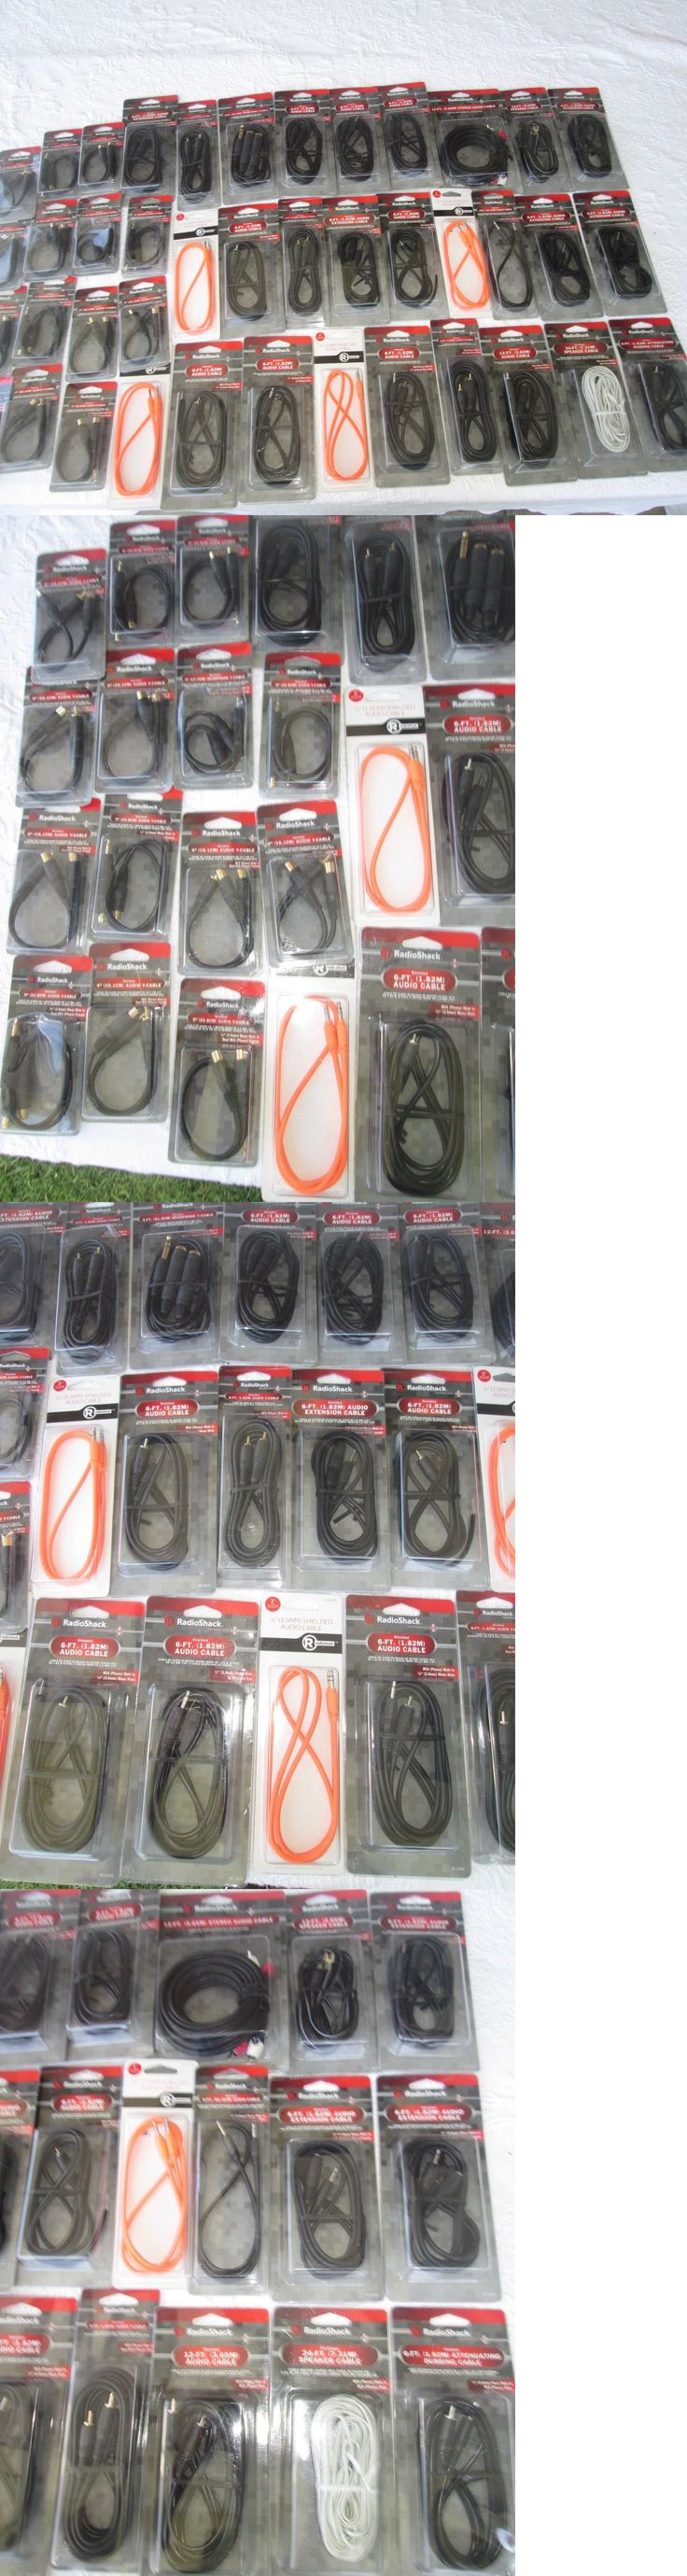 Other Consumer Electronic Lots: Wholesale Lot Of Radio Shack Merchandise (Audio Cables) For Retail New Jp 11 -> BUY IT NOW ONLY: $55.0 on eBay!